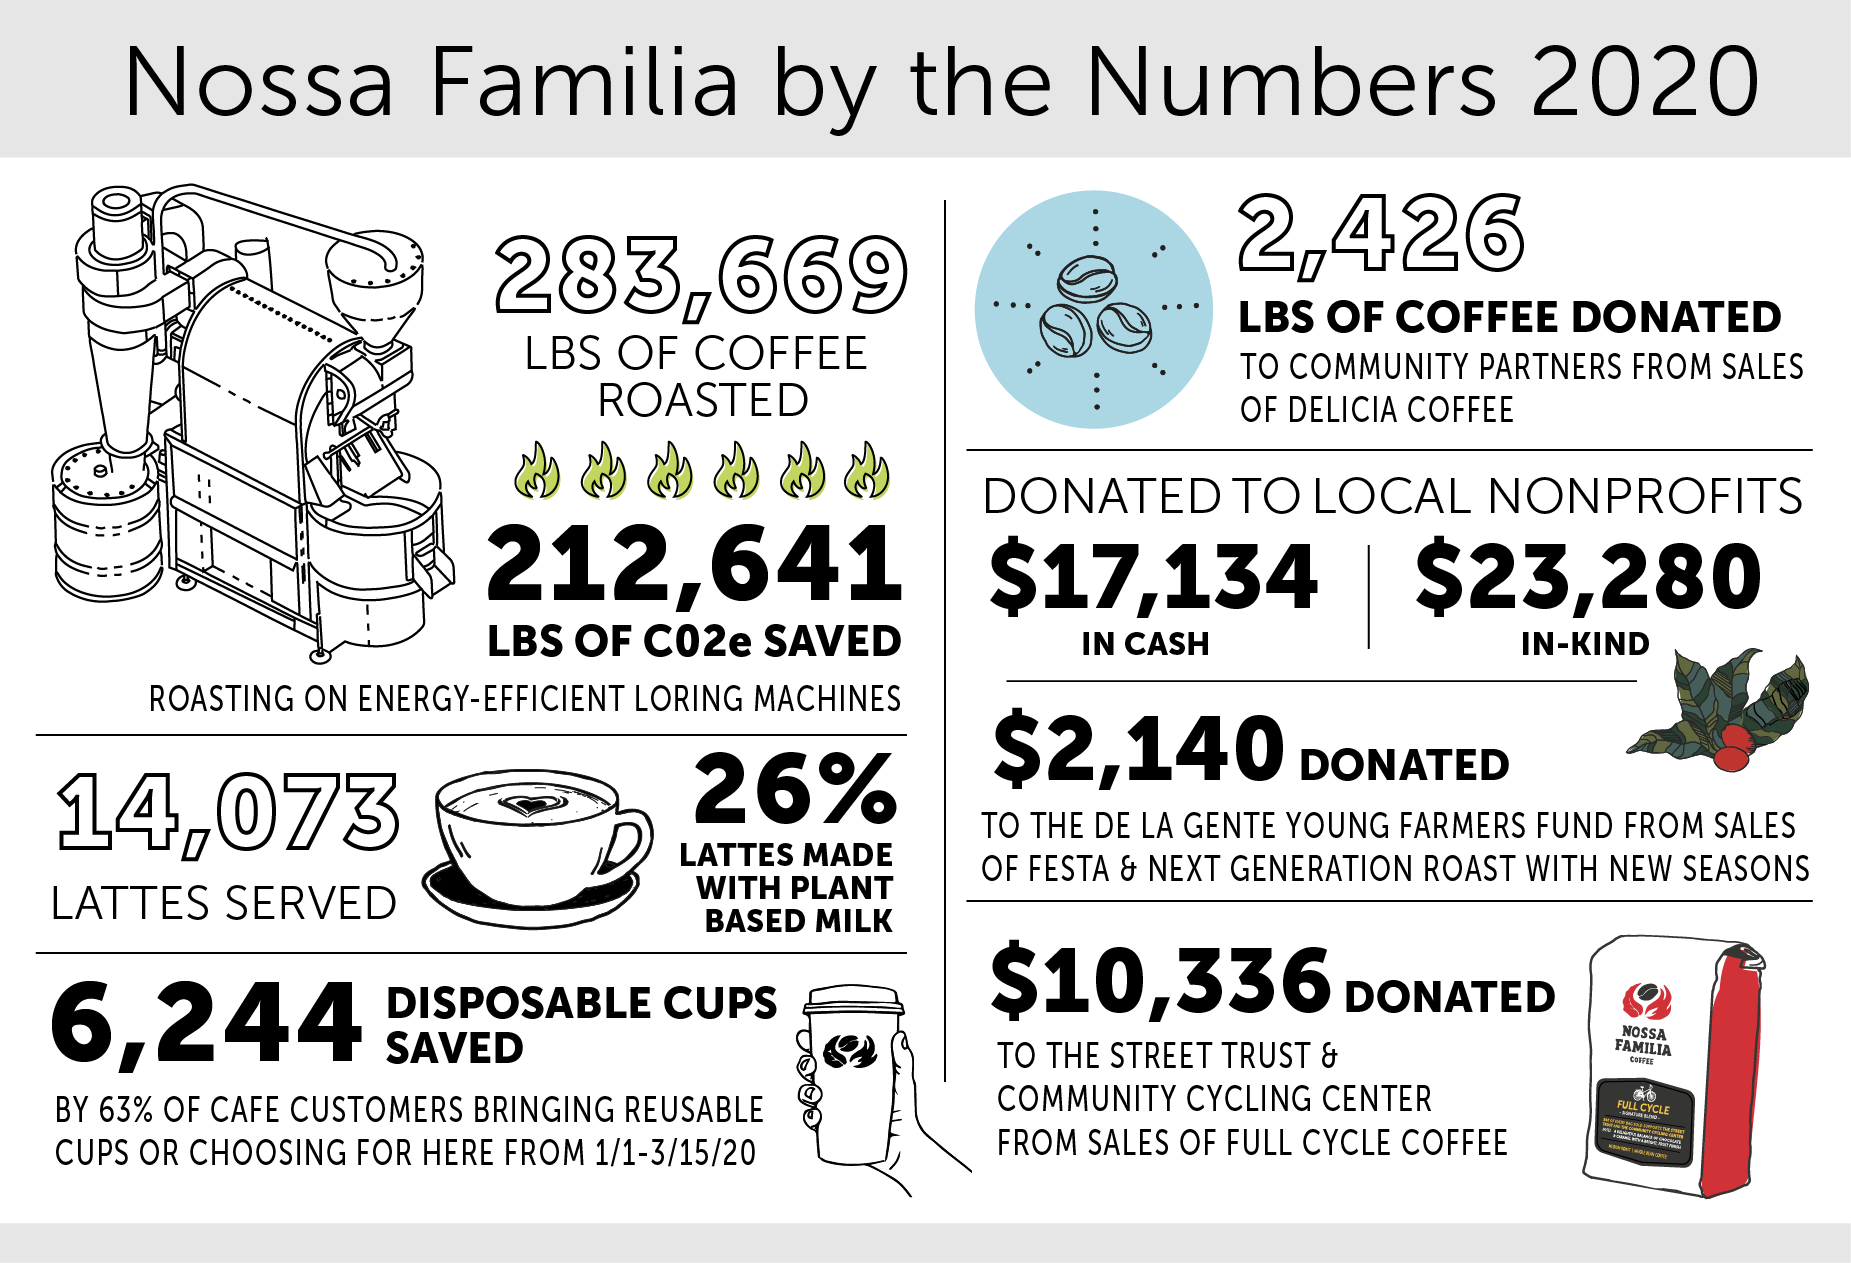 Nossa Familia by the Numbers 2020